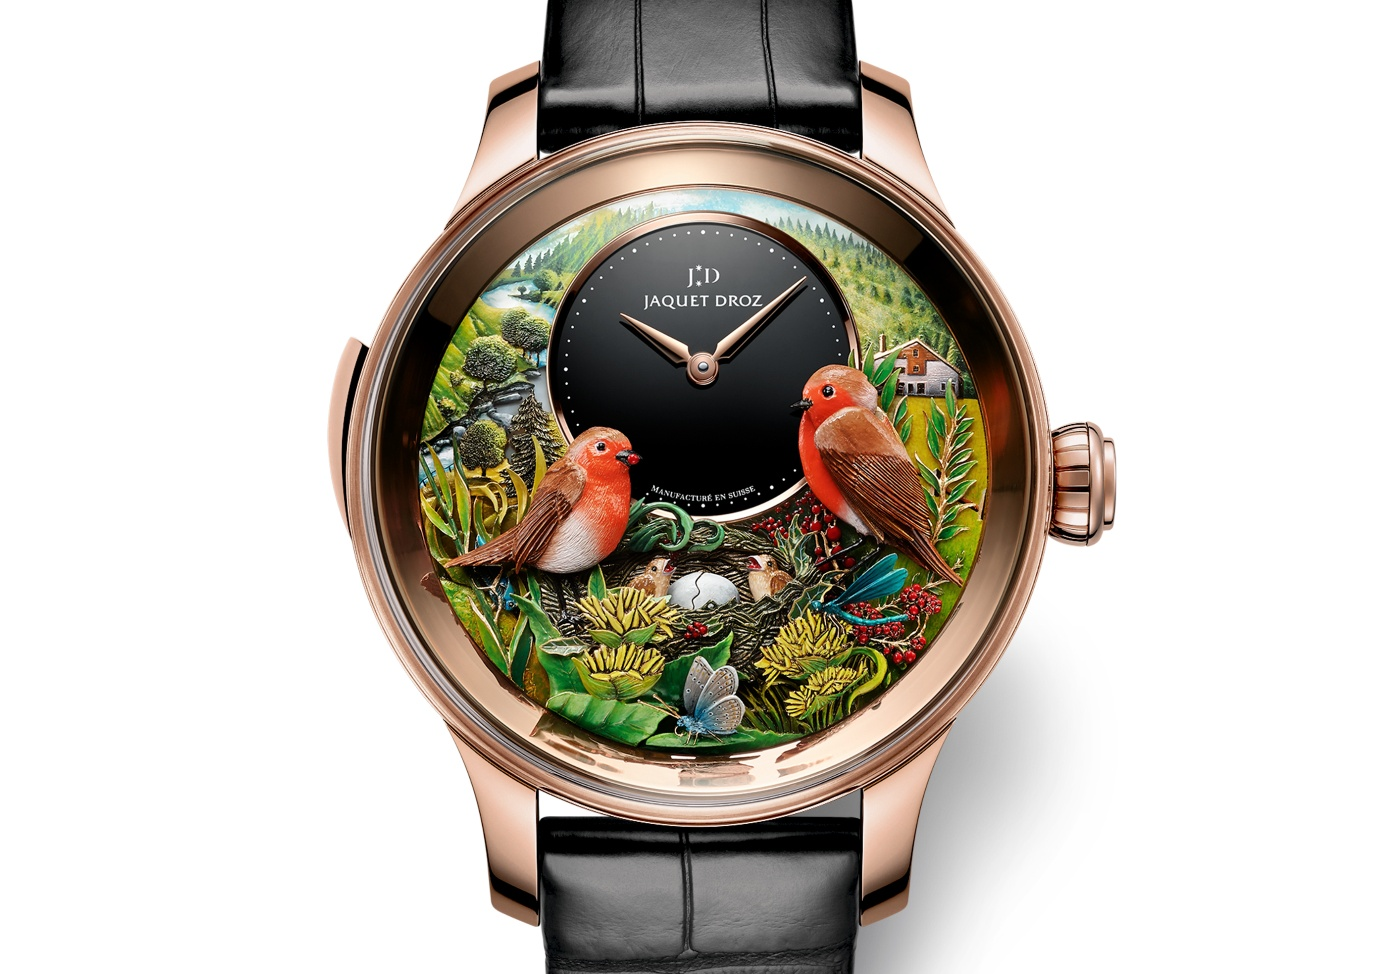 Jaquet Droz celebrates the 300th anniversary of its founder